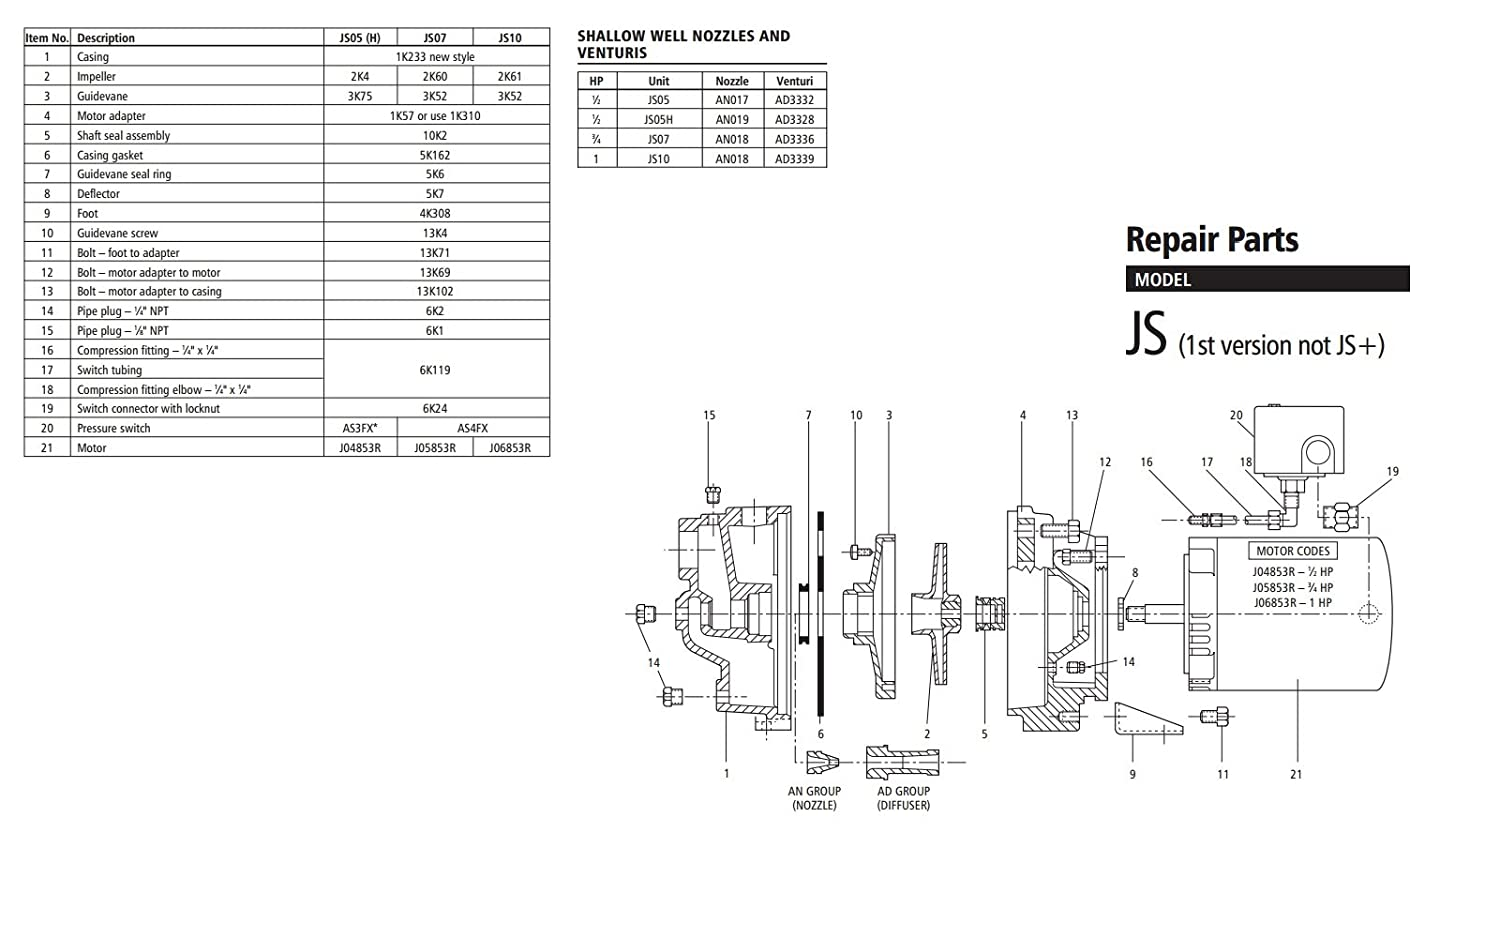 7 3 Glow Plug Troubleshooting Wiring Diagrams